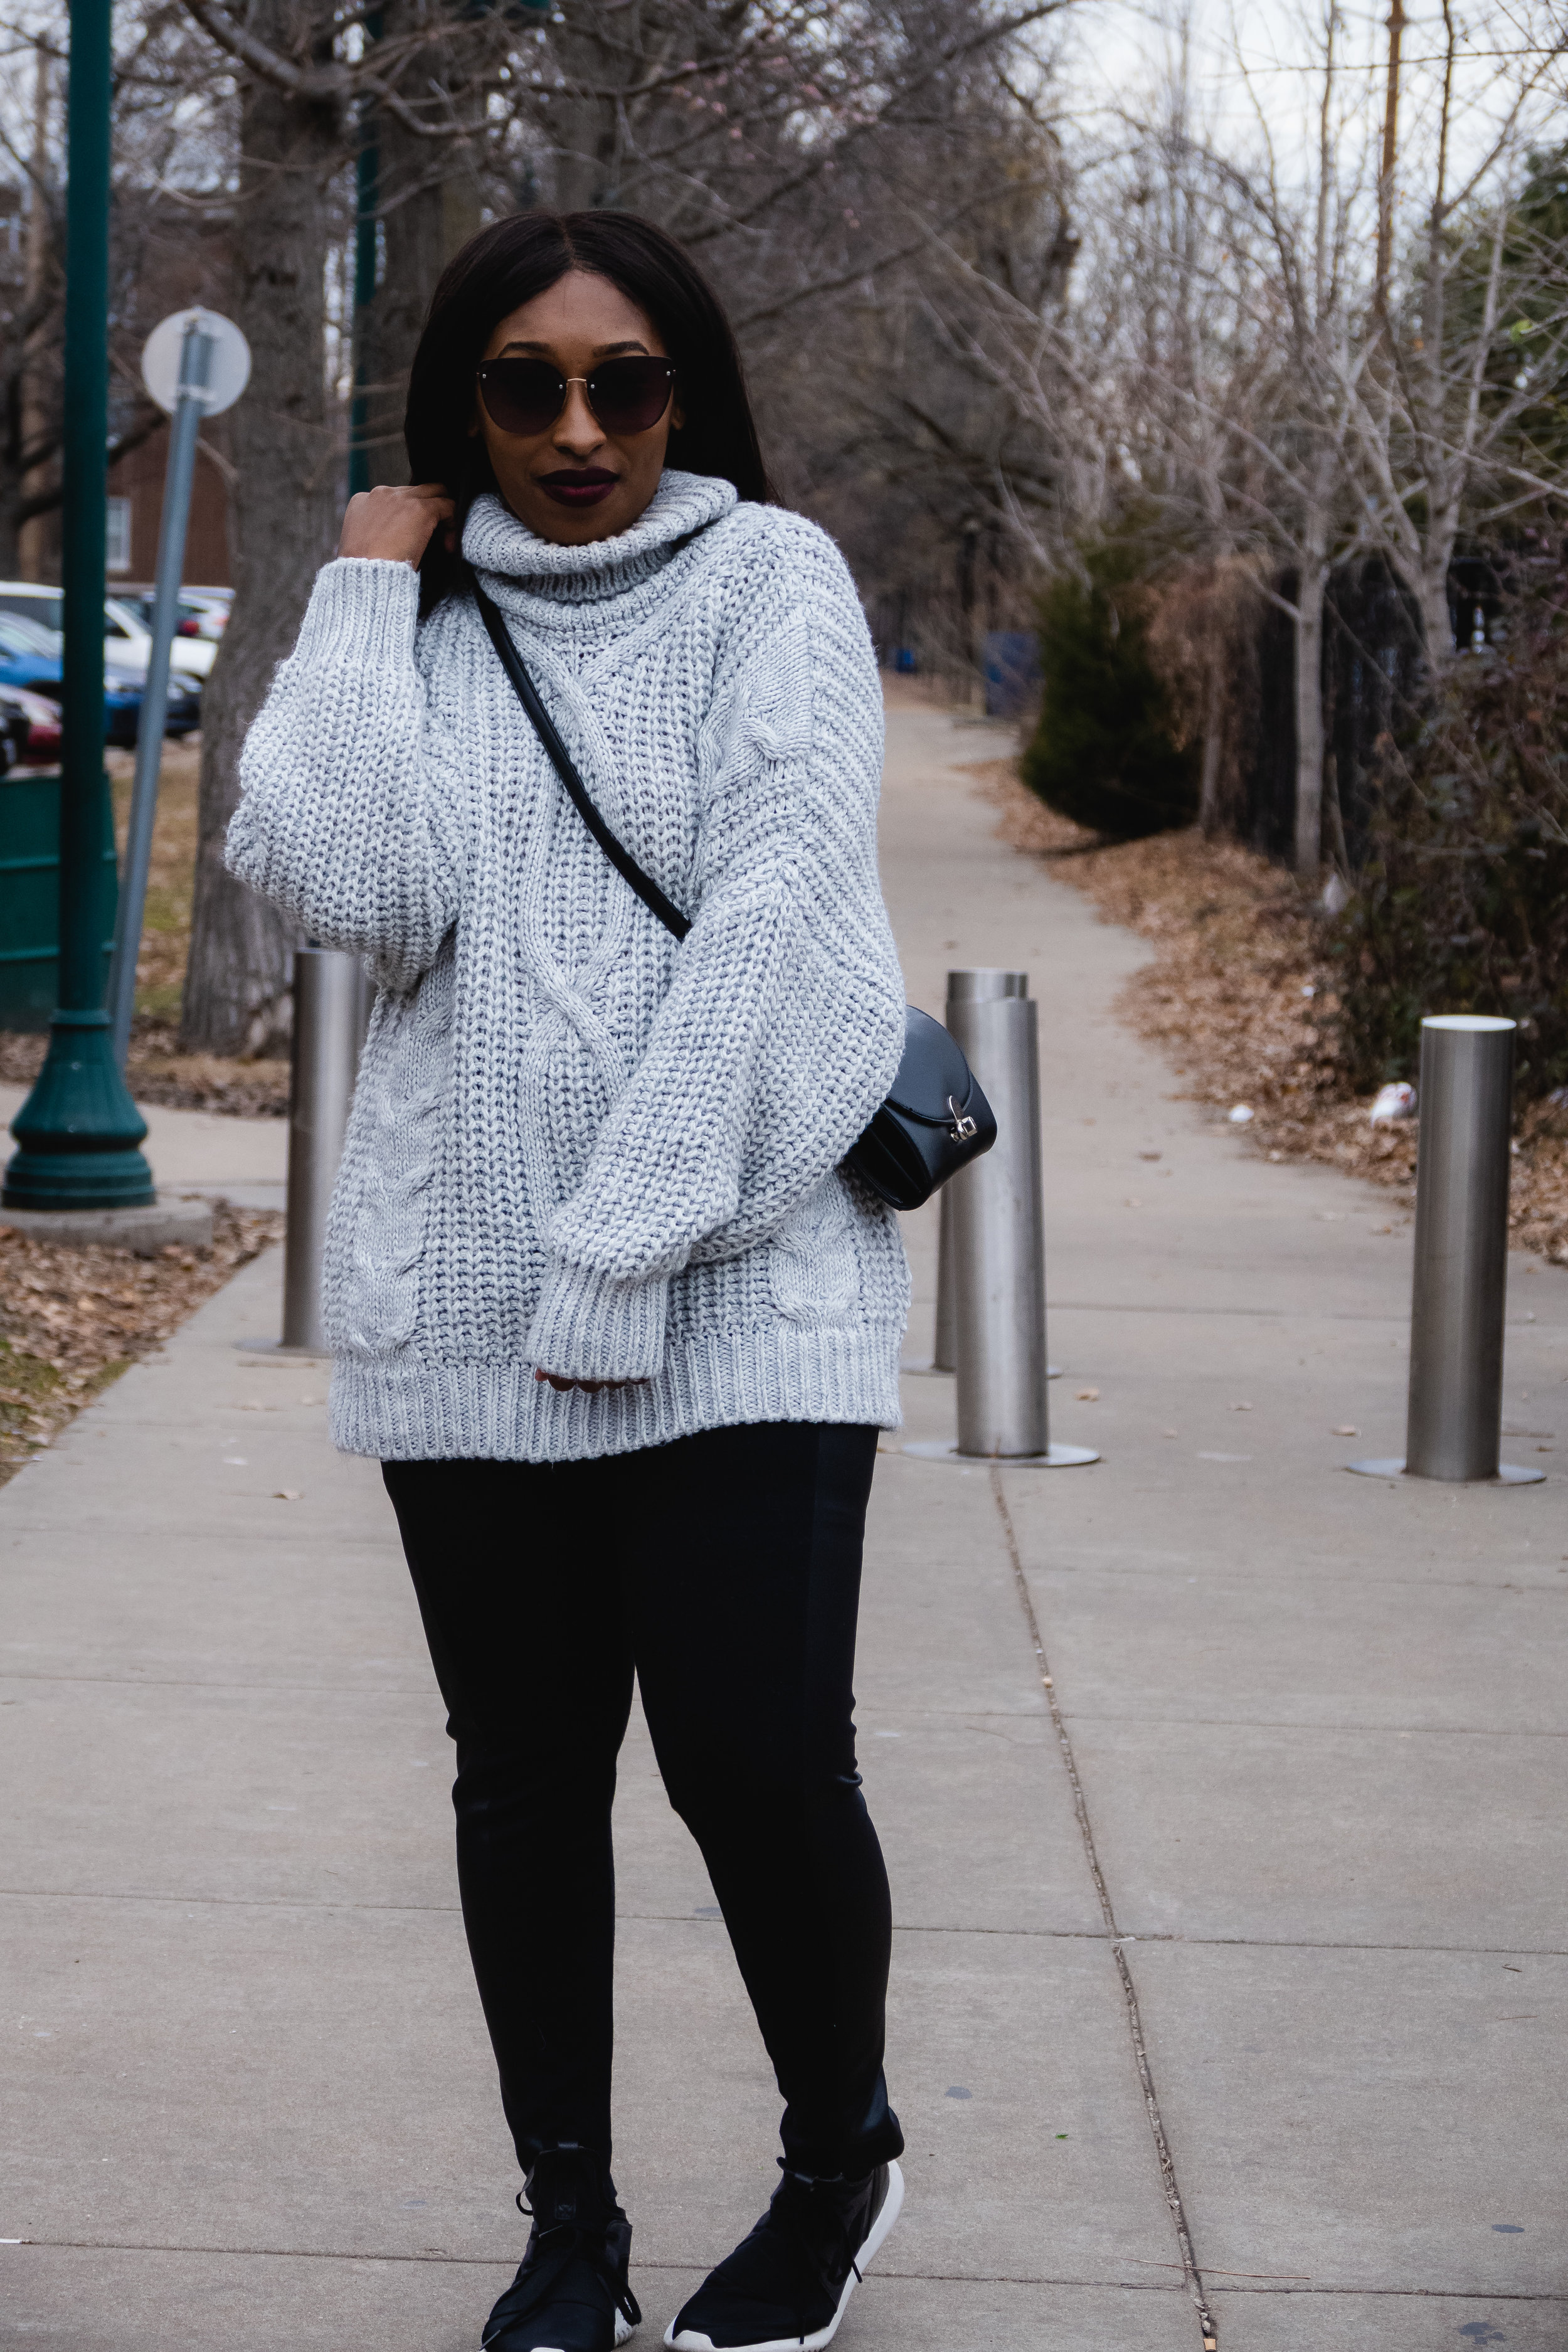 How to style a Cable knit jumper dress, 2019 fashion trends, femme luxe finery